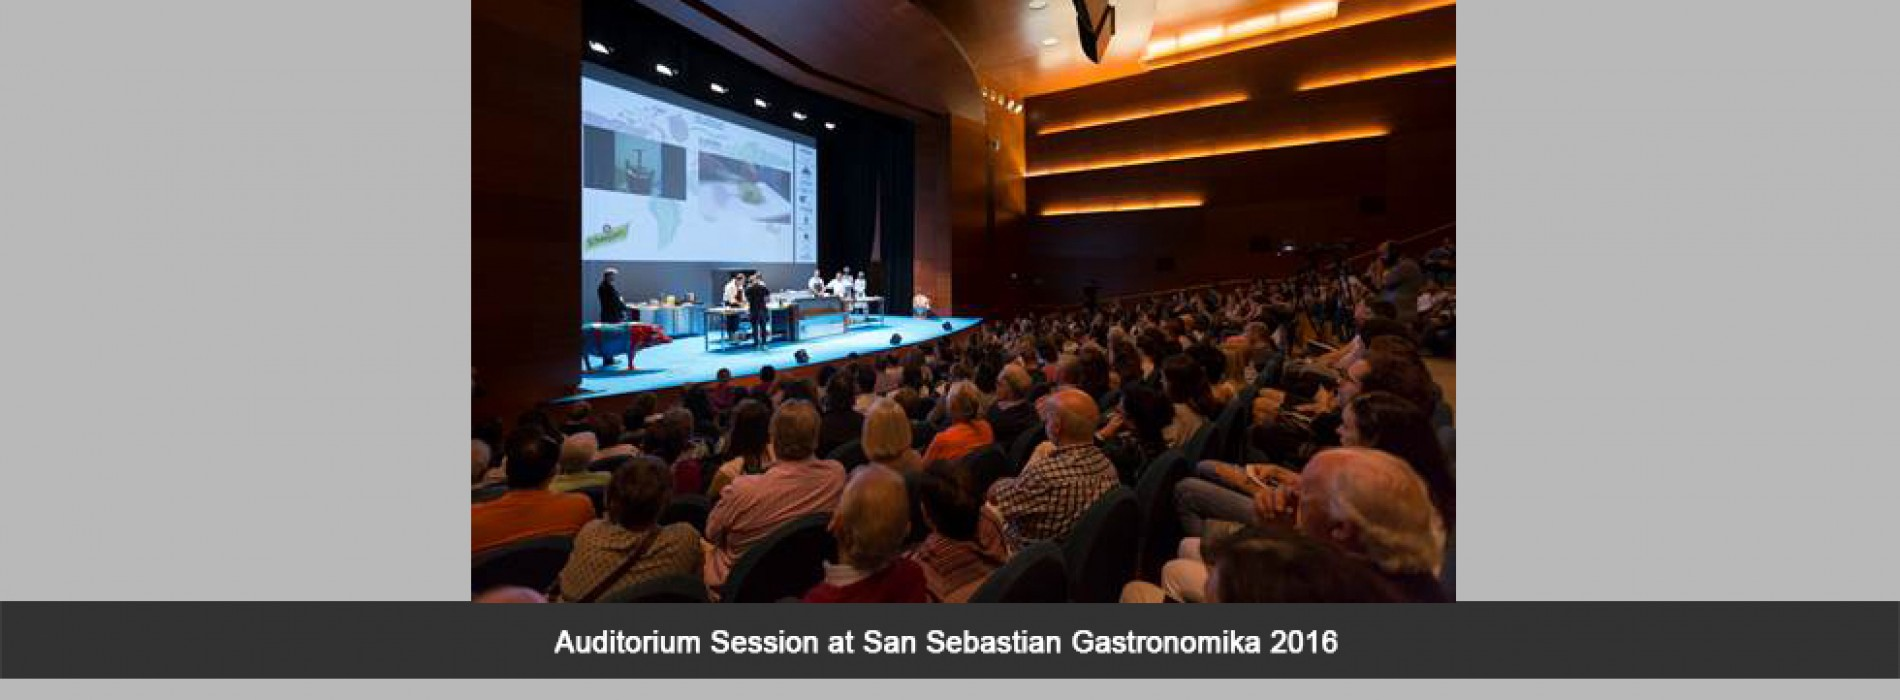 India, the Guest Country at San Sebastian Gastronomika 2017